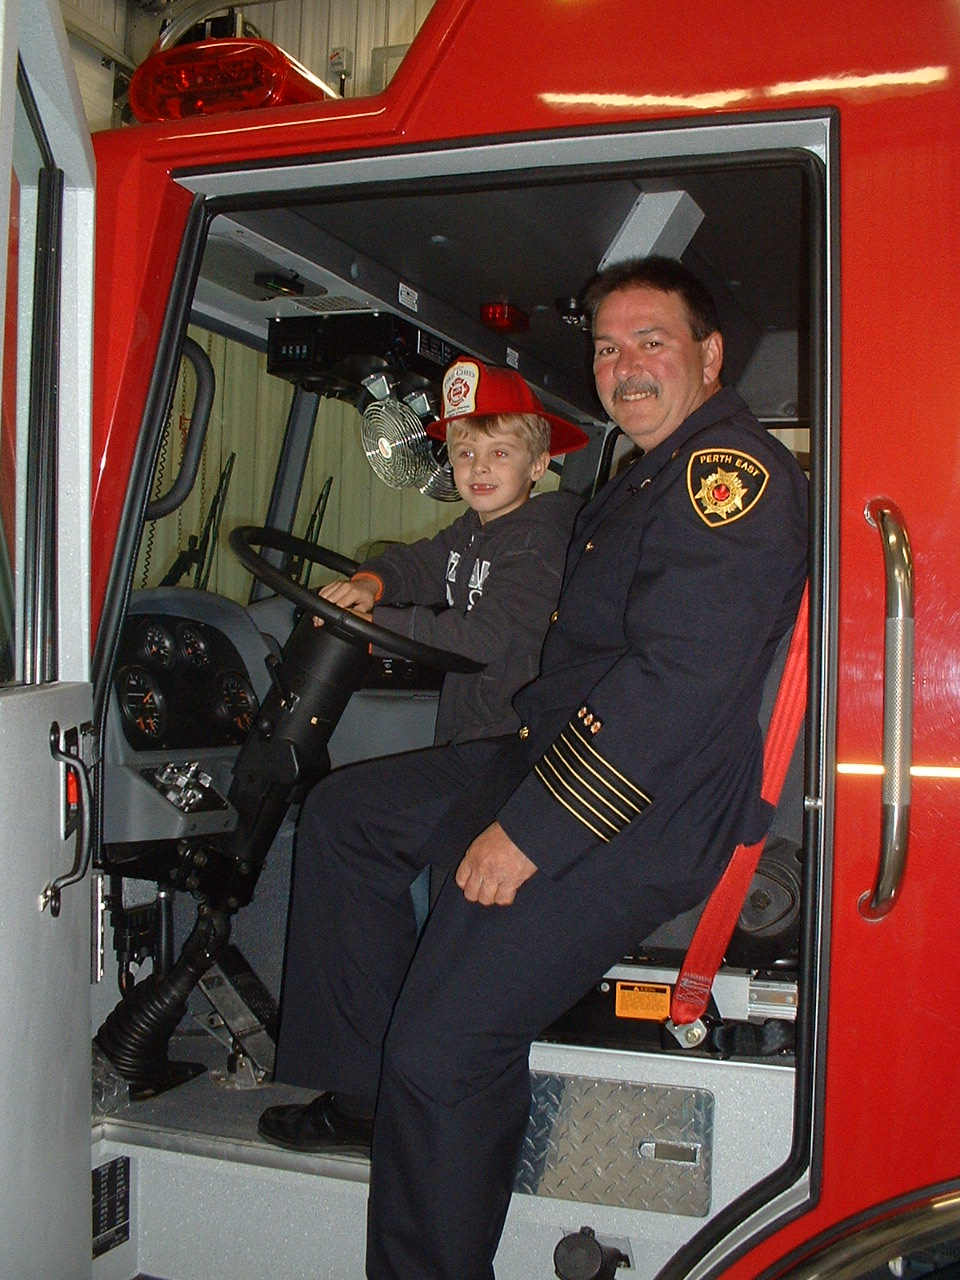 Station Chief and Junior Fire Chief in Truck